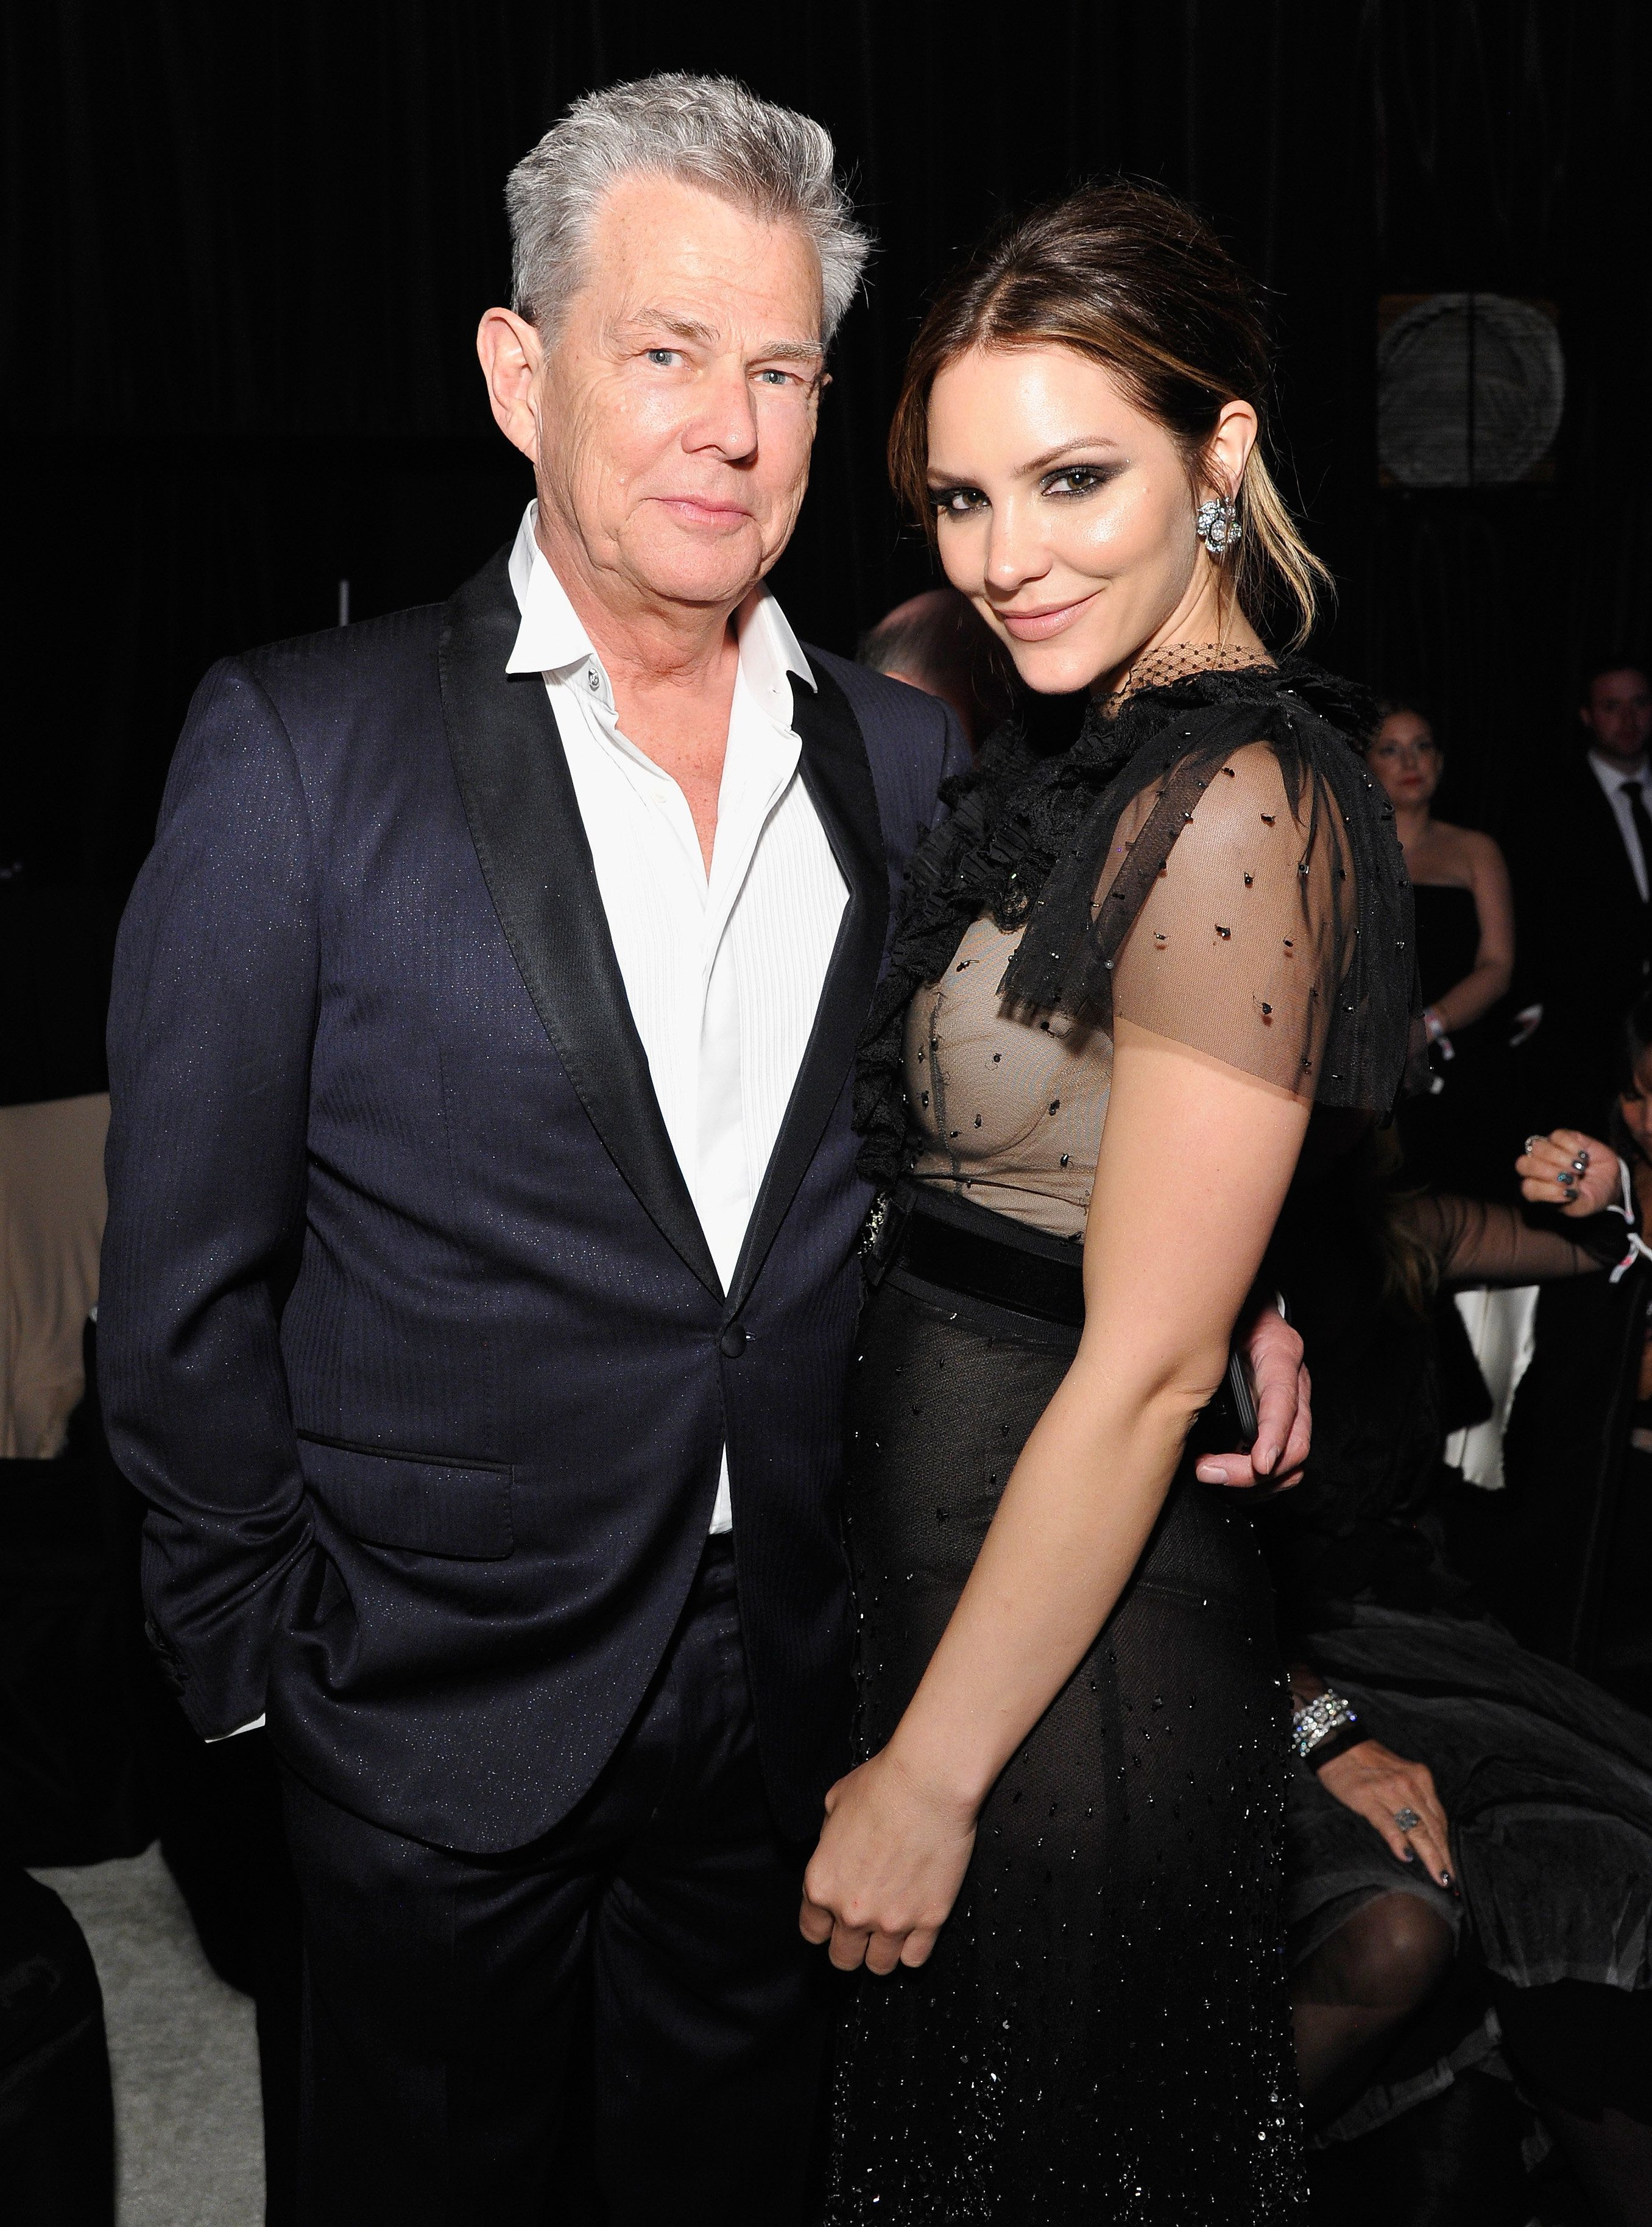 David Foster and Katharine McPhee attend the 26th annual Elton John AIDS Foundation Academy Awards in 2018.